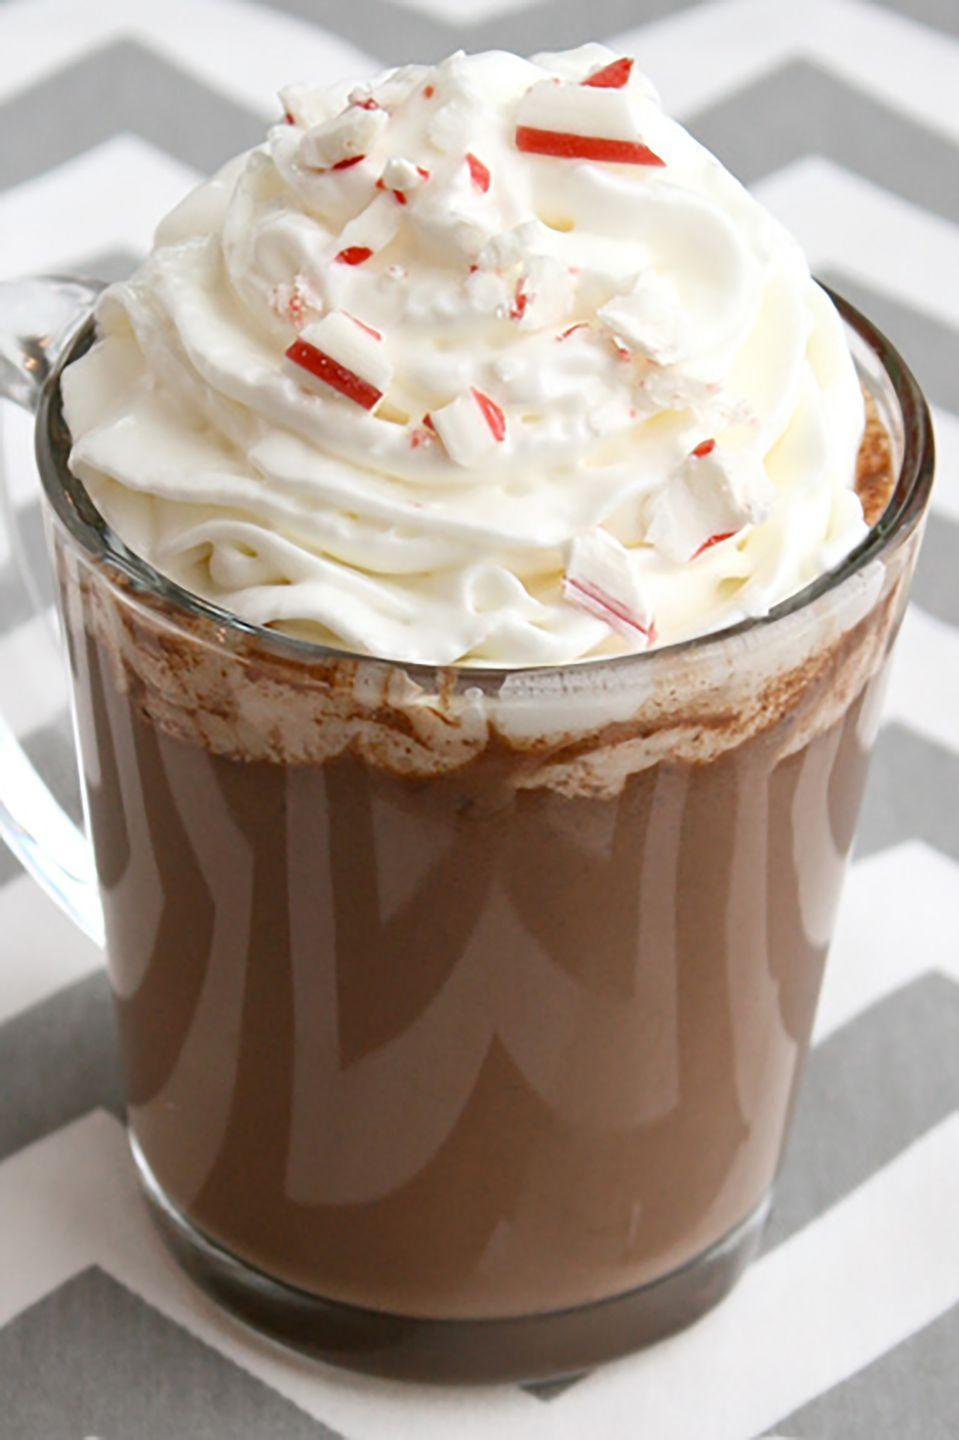 """<p>A little vodka or creme de menthe, and this classic holiday drink goes from kid-friendly to fully grown-up. And thanks to this slow cooker recipe, it stays warm for hours of sipping pleasure.</p><p><strong><a href=""""https://www.countryliving.com/food-drinks/recipes/a34524/slow-cooker-peppermint-bark-hot-chocolate-recipe-ghk1213/"""" rel=""""nofollow noopener"""" target=""""_blank"""" data-ylk=""""slk:Get the recipe"""" class=""""link rapid-noclick-resp"""">Get the recipe</a>.</strong> </p>"""